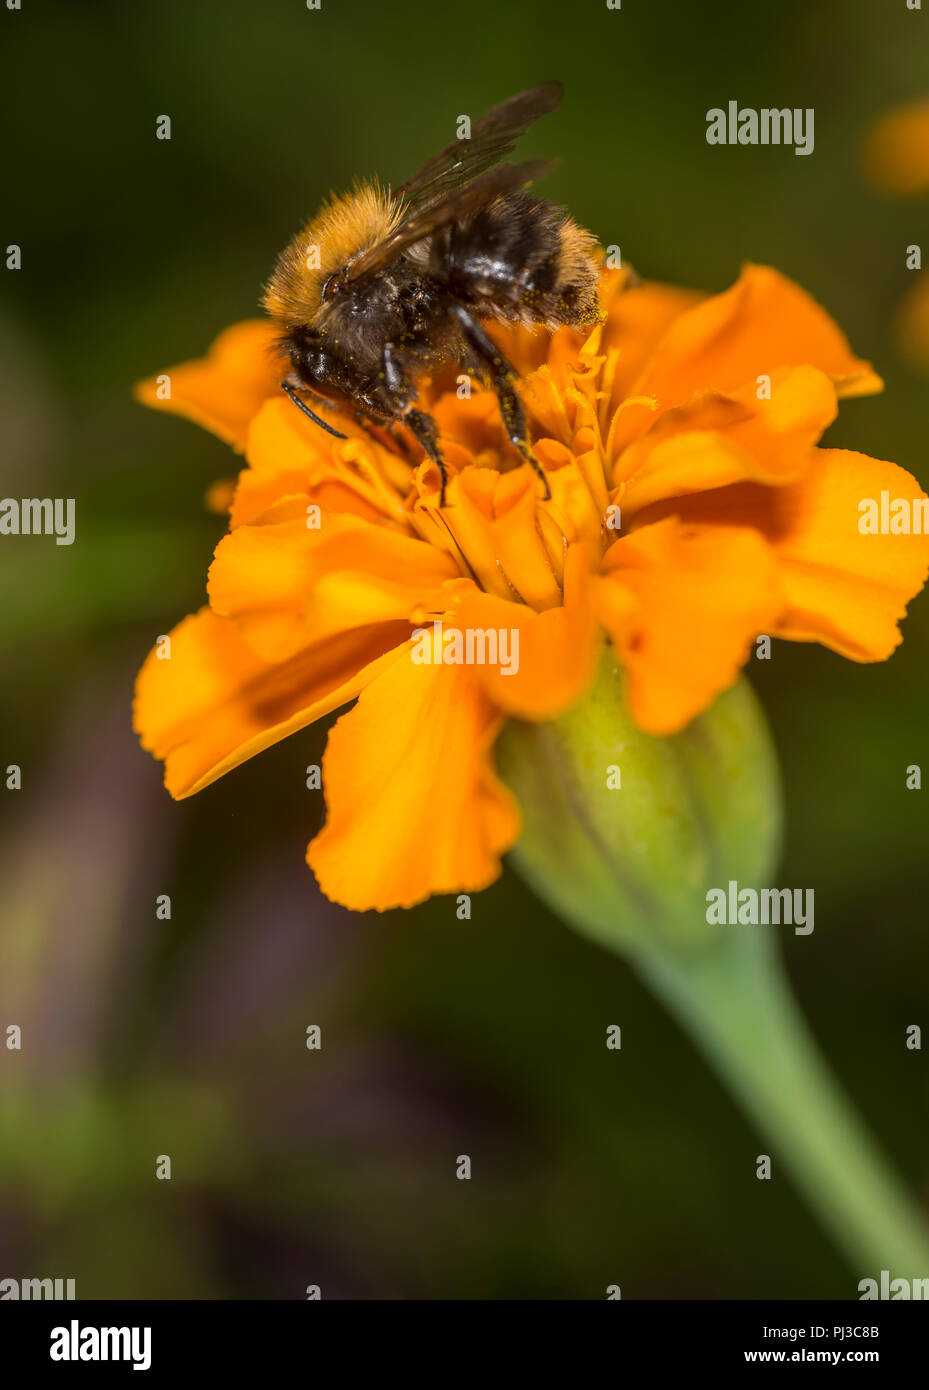 Bumblebee taking nectar from a colorful flower Stock Photo